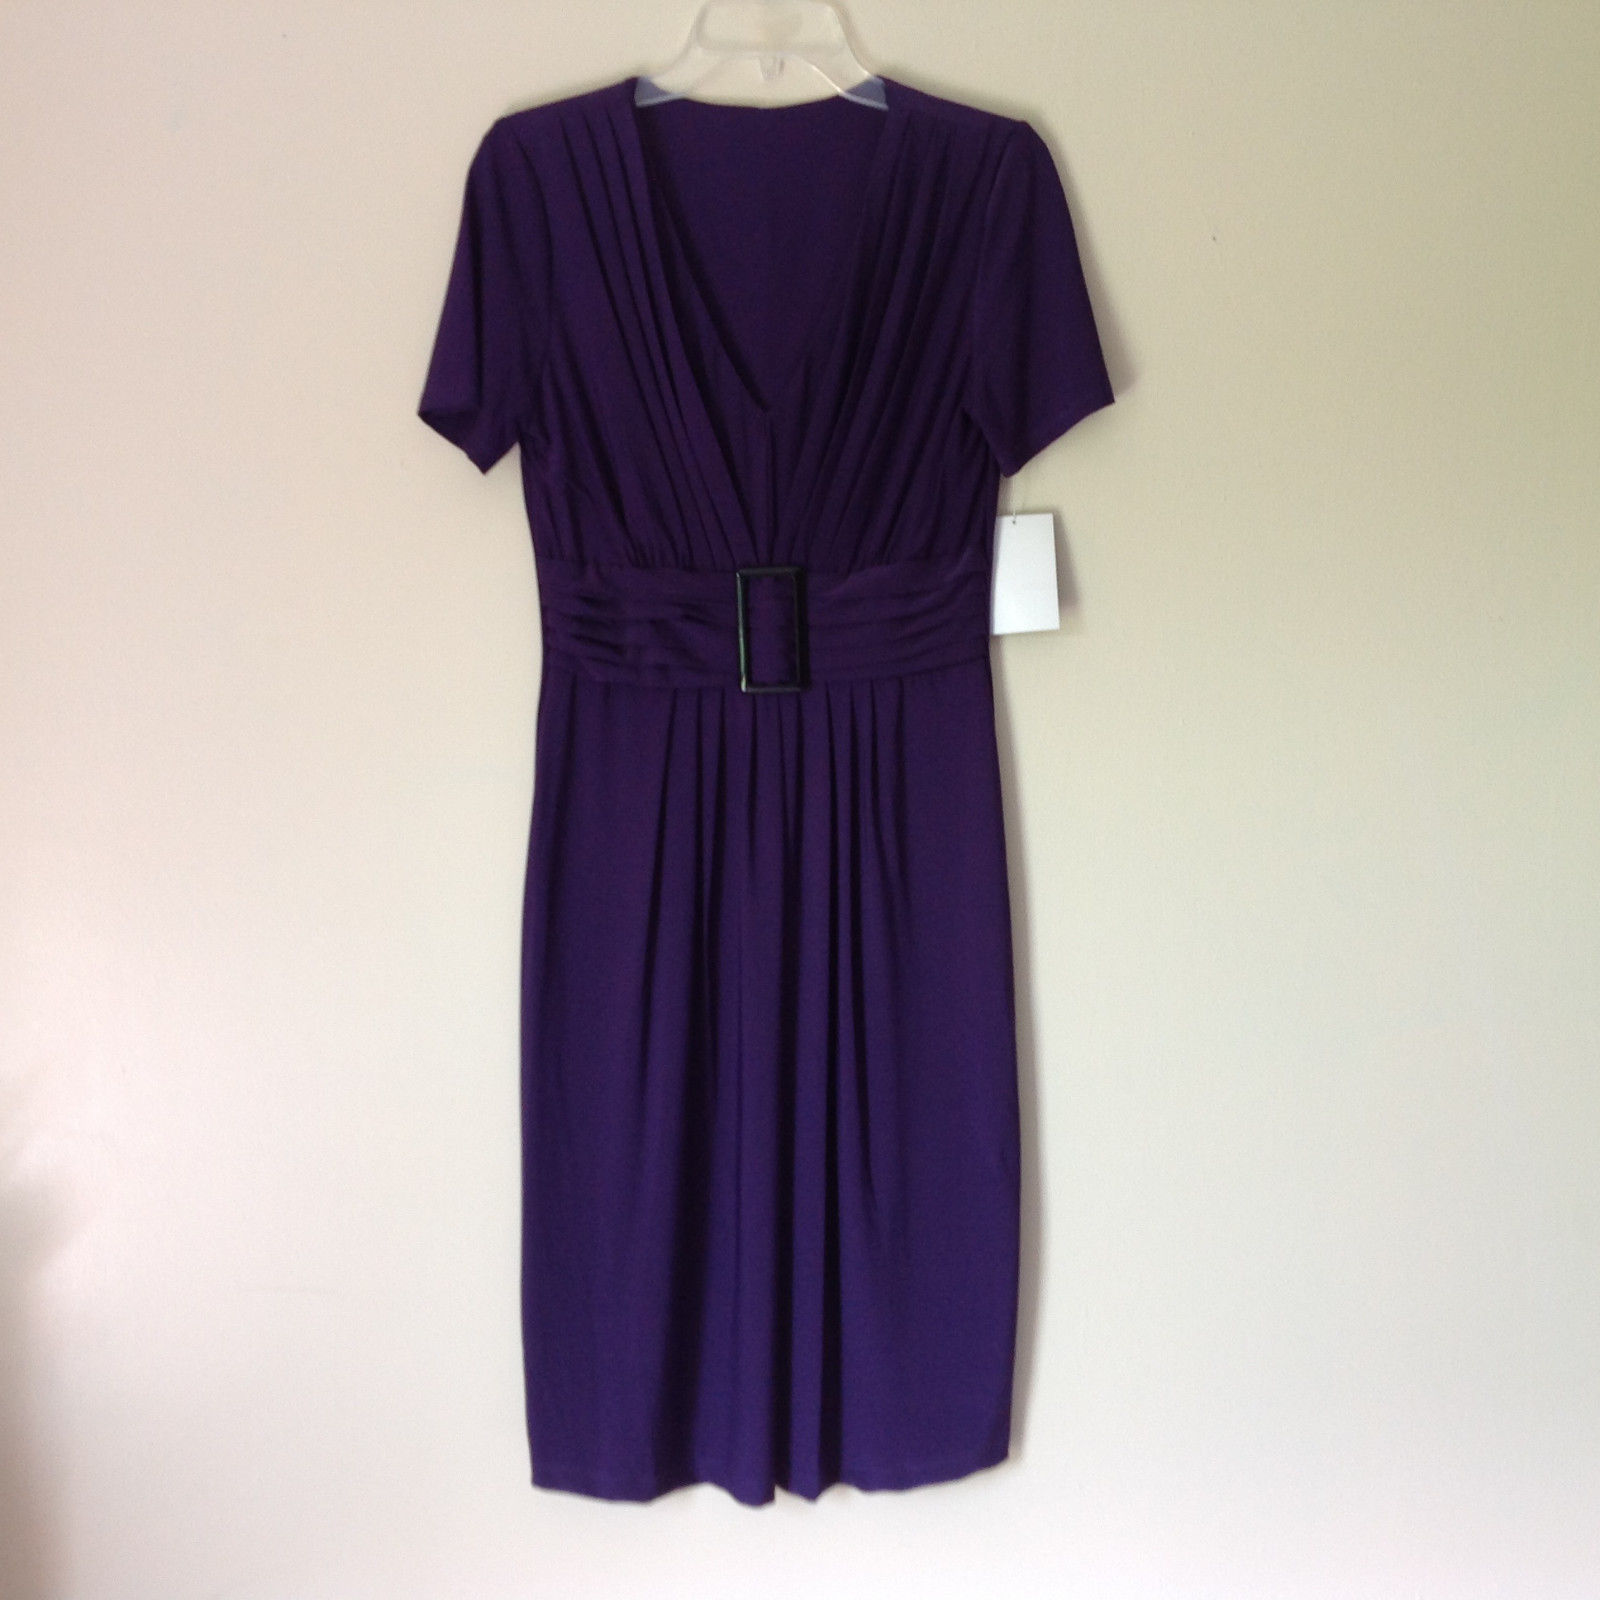 V Neck Short Sleeve Purple Elegant Dress NEW with Tag Size 8 and Size 10